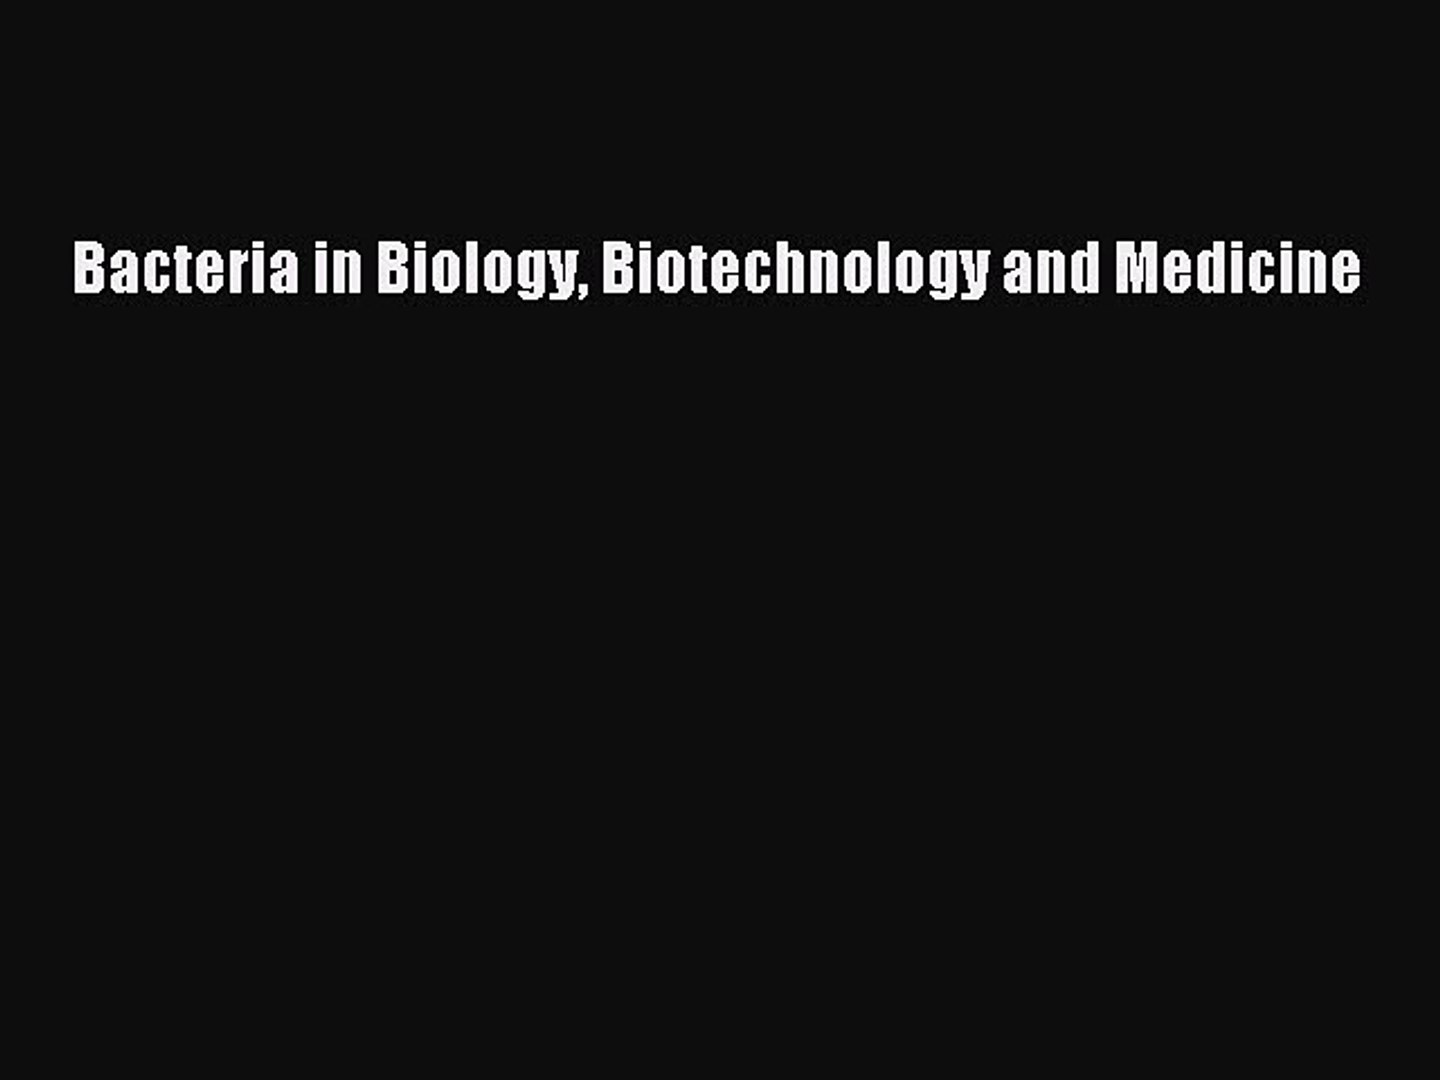 Download Bacteria in Biology Biotechnology and Medicine PDF Free